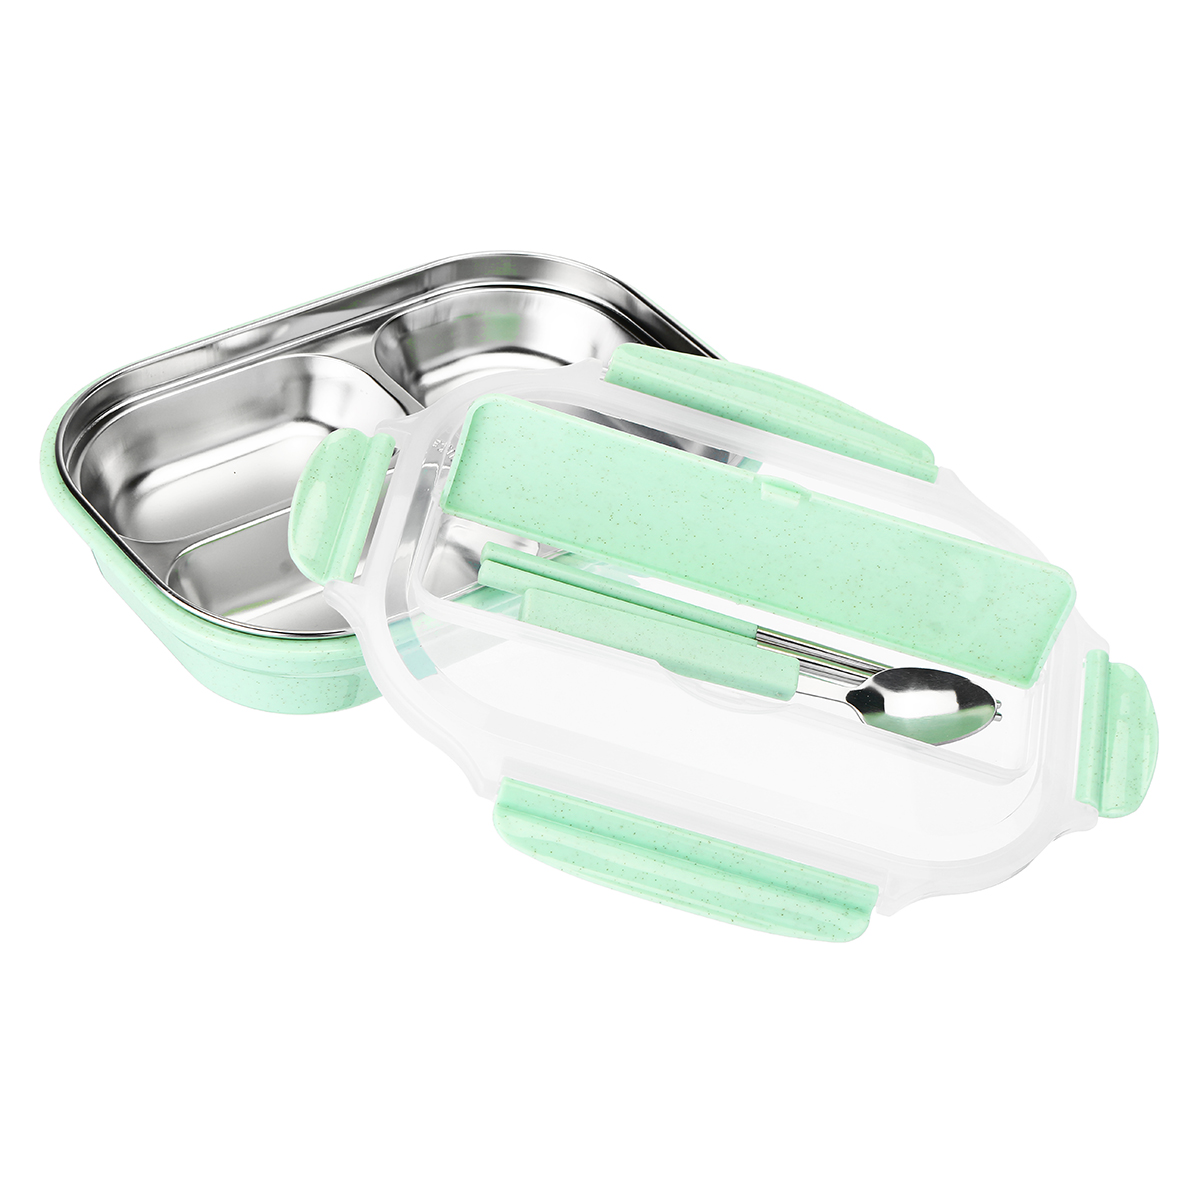 Portable Stainless Steel Insulated Lunch Box Bento Food Container Thermal Case